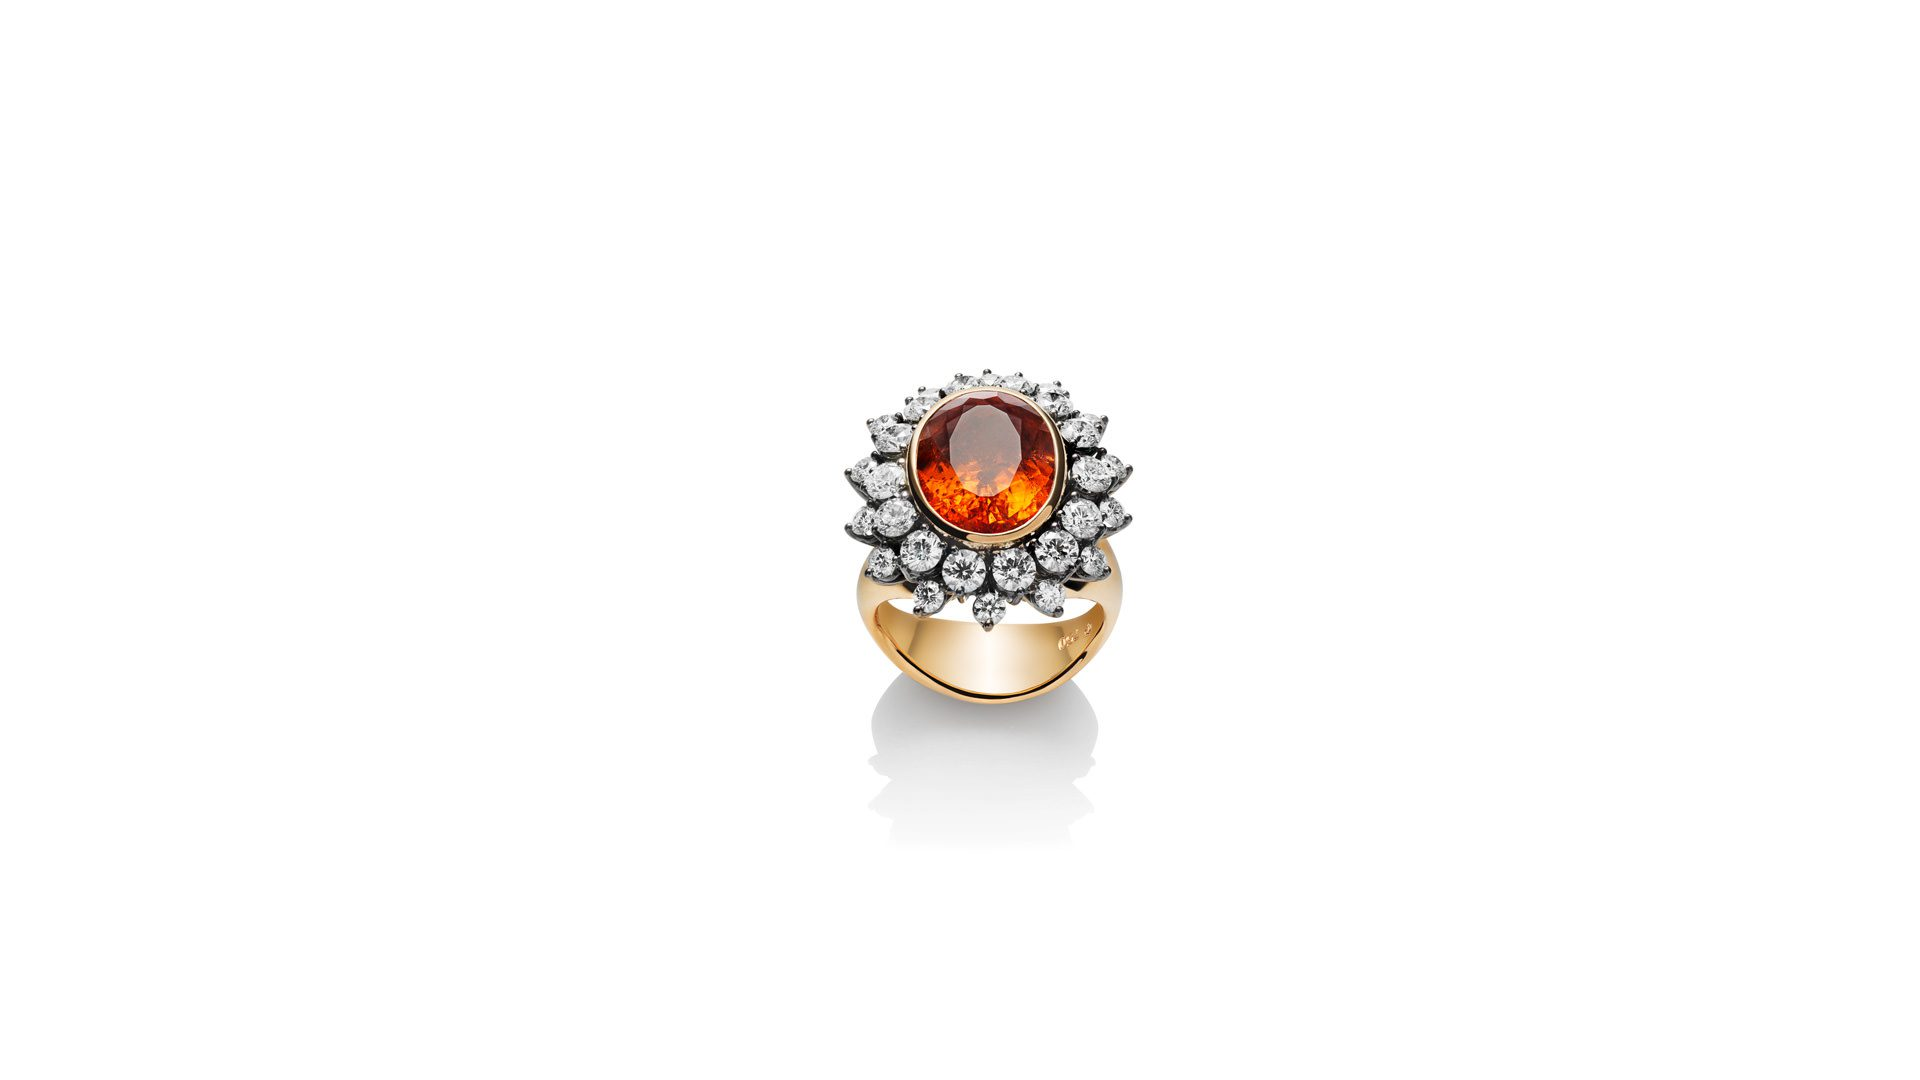 ring orange zoom jewellery adfk round open oval rocks out cabochon rings on sold silver sterling garnet double mandarin